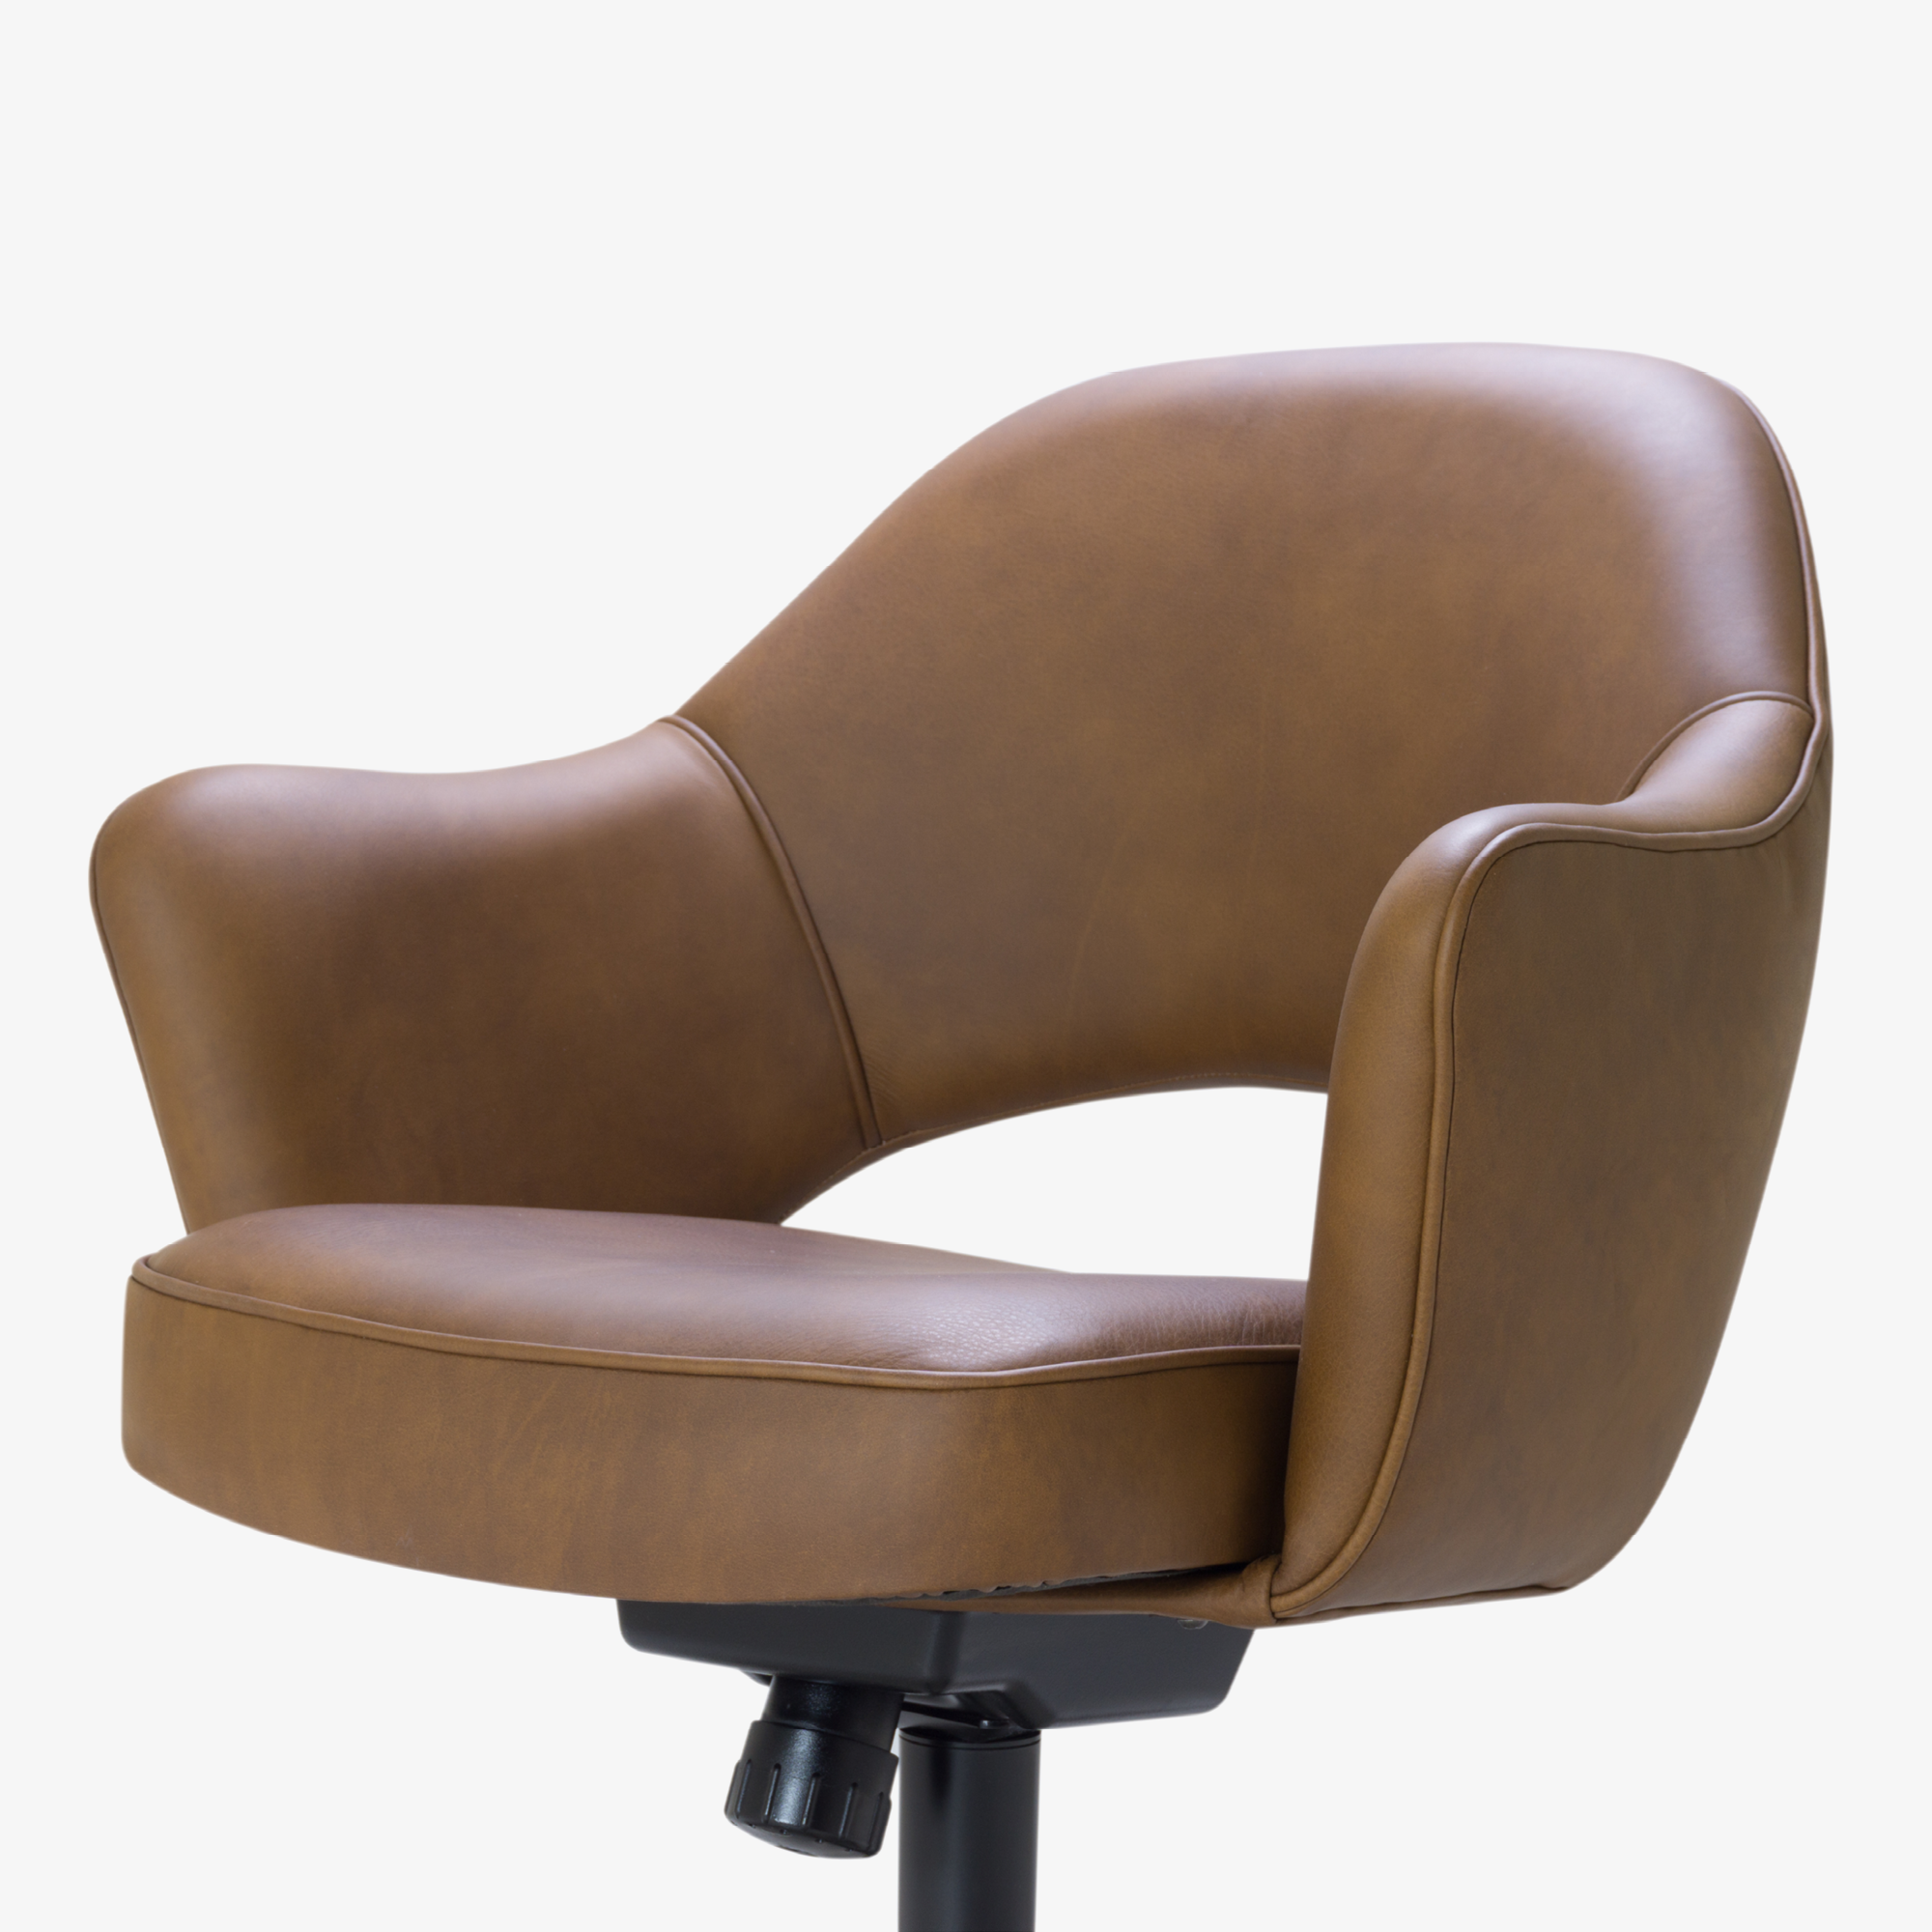 Saarinen Executive Arm Chair in Saddle Leather, Swivel Base7.png